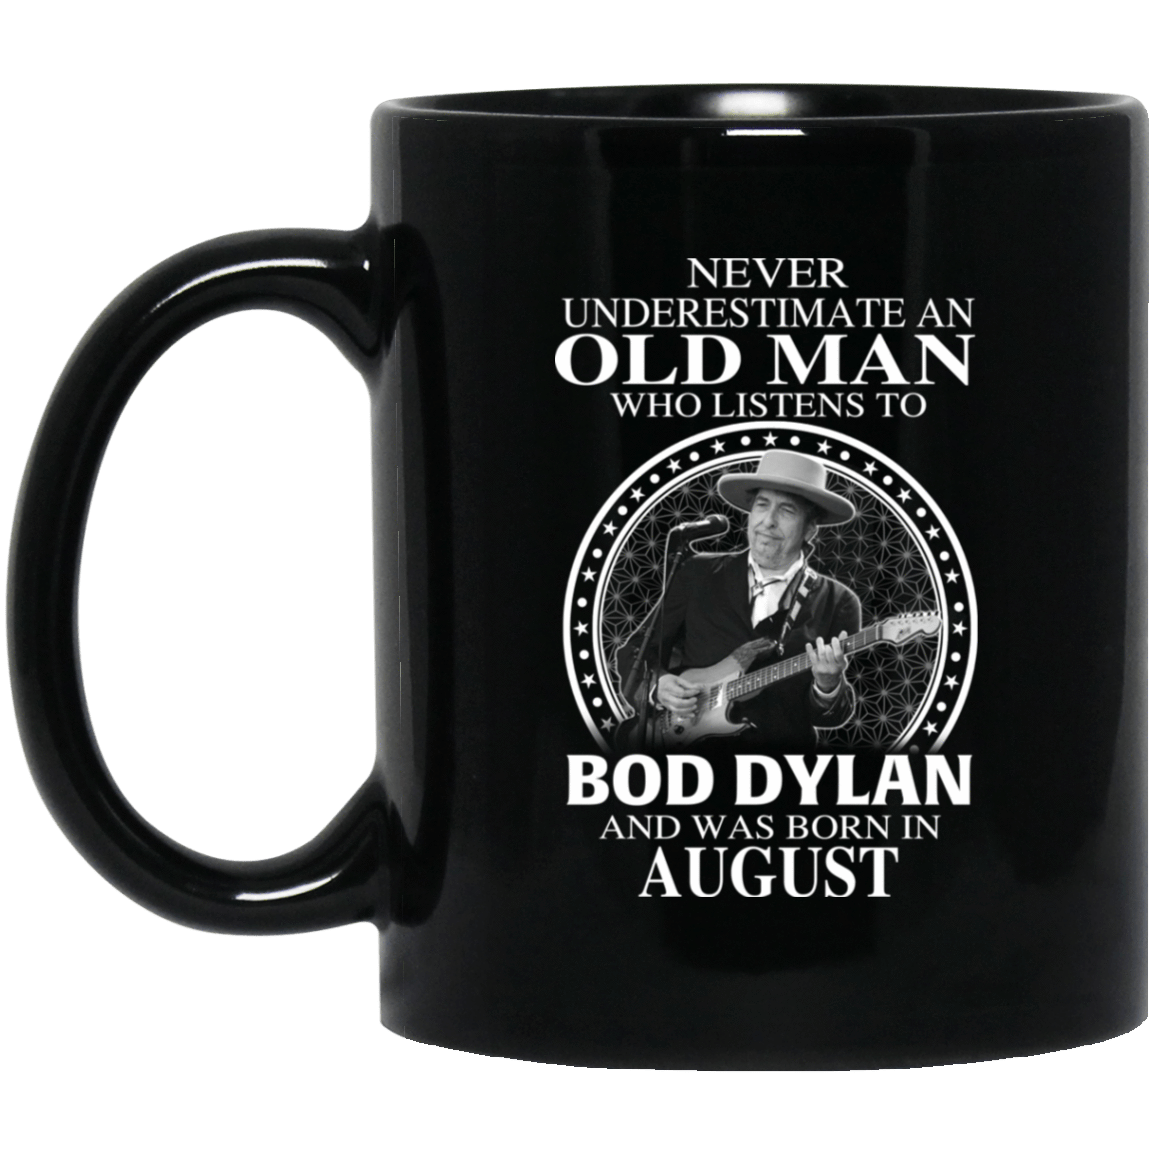 An Old Man Who Listens To Bob Dylan And Was Born In August Mug 1065-10181-76154381-49307 - Tee Ript